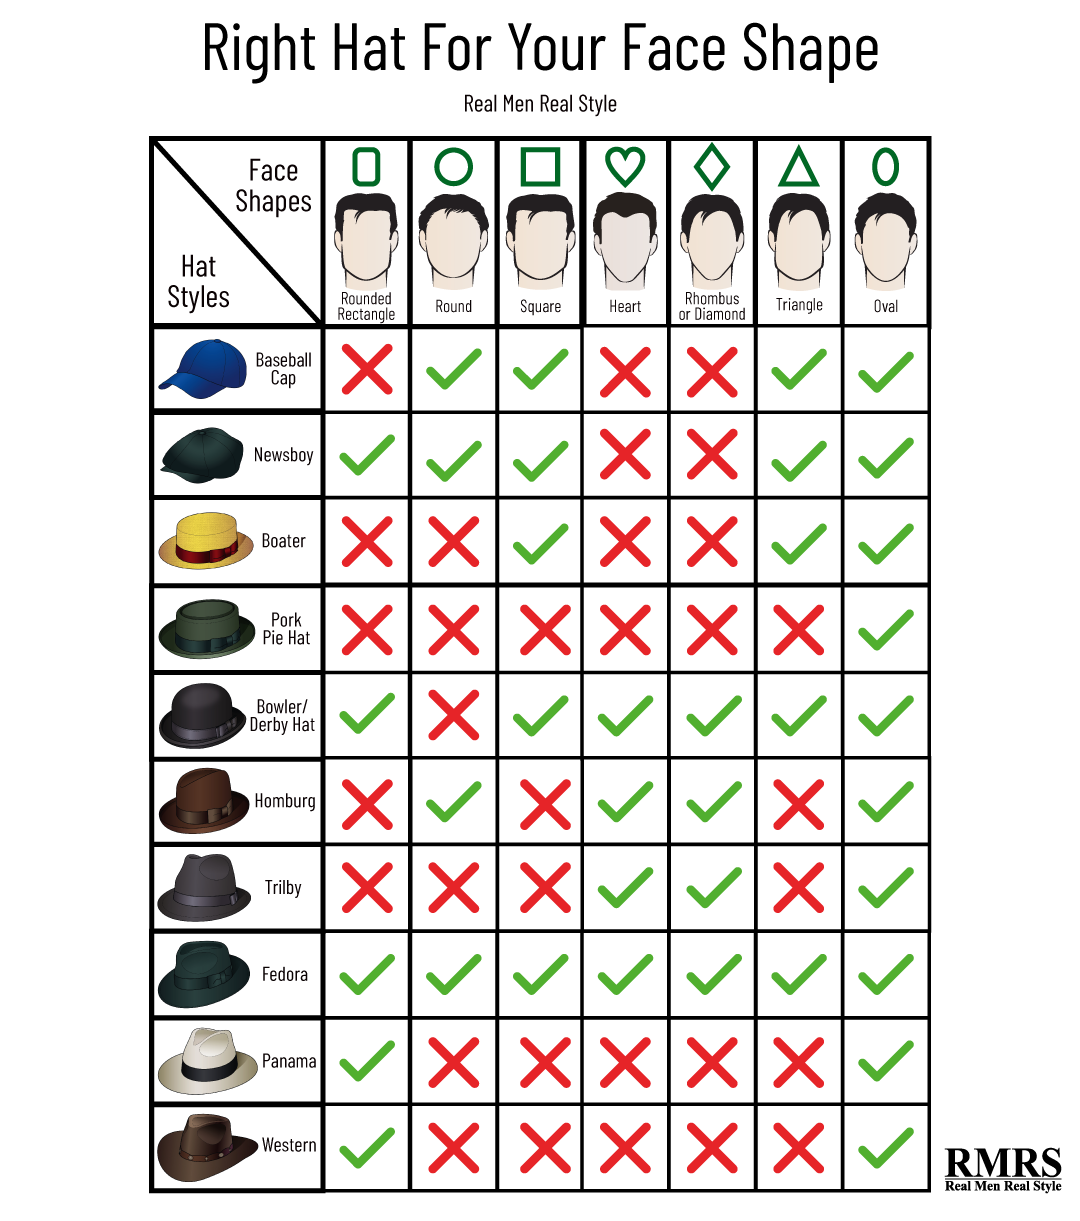 The Ultimate Guide To Men S Hats Hats For Men Face Shapes Men Style Tips